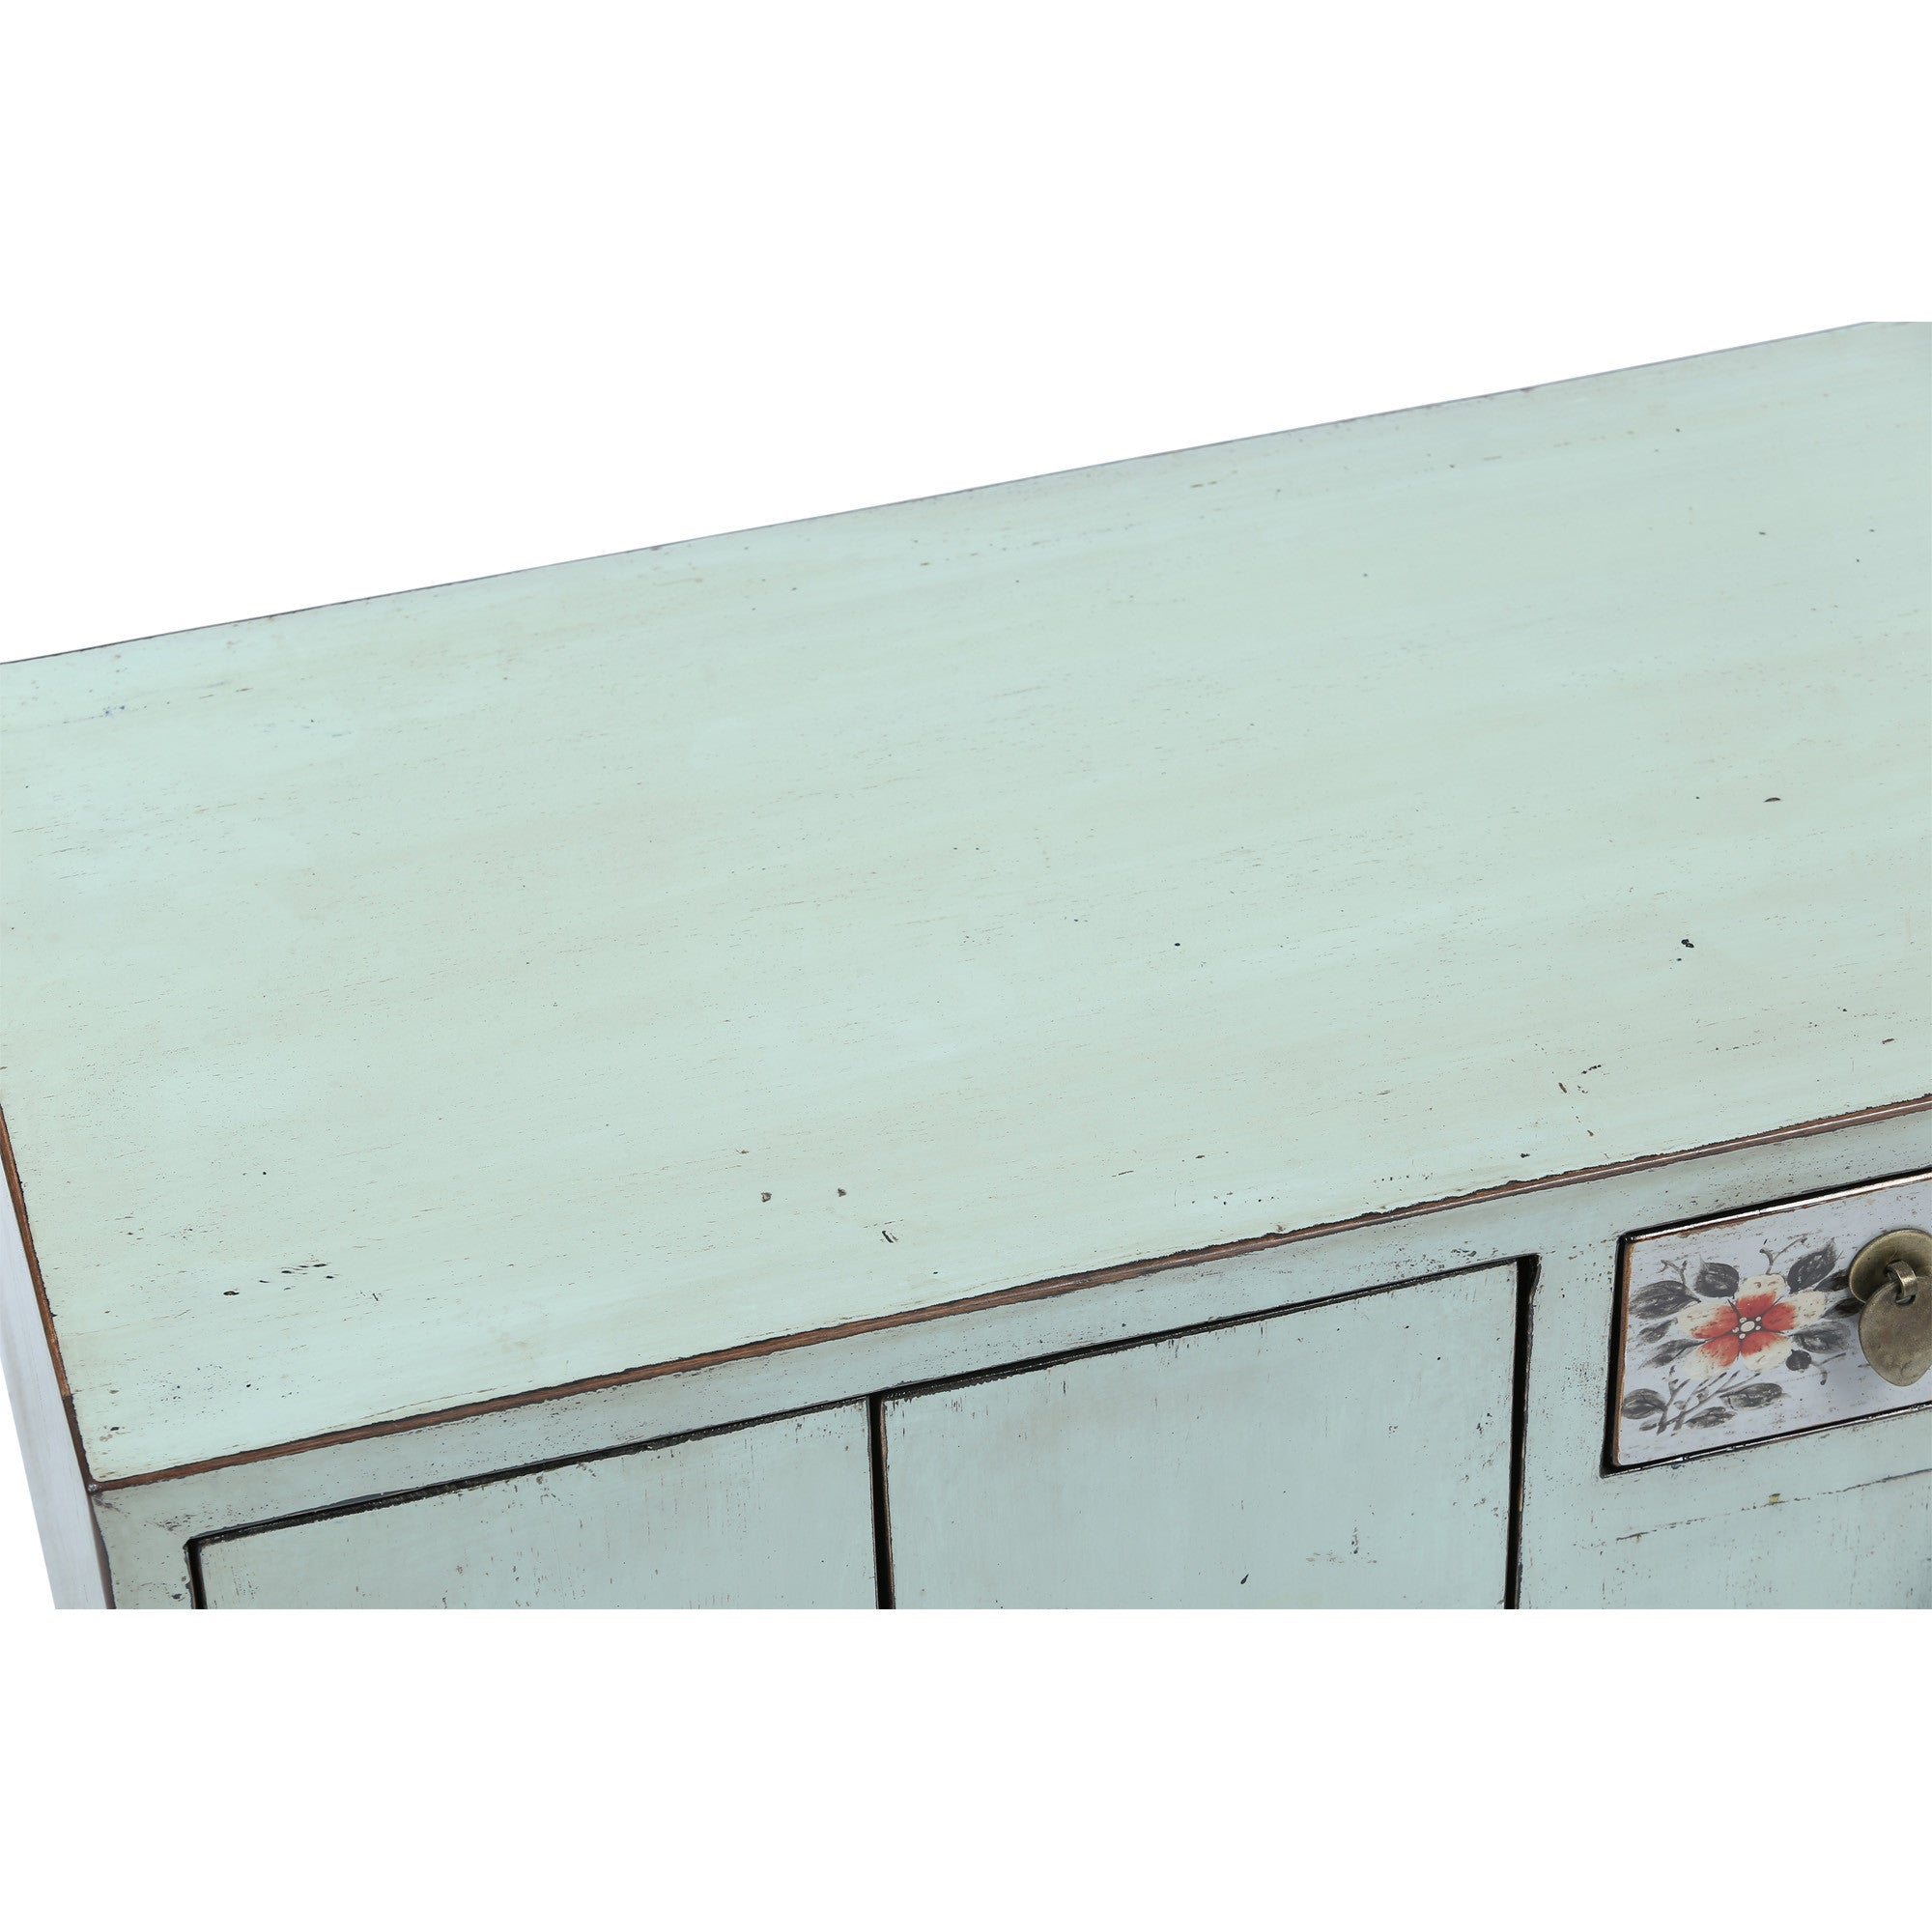 Light Blue Low Sideboard with Red Flowers surface detail